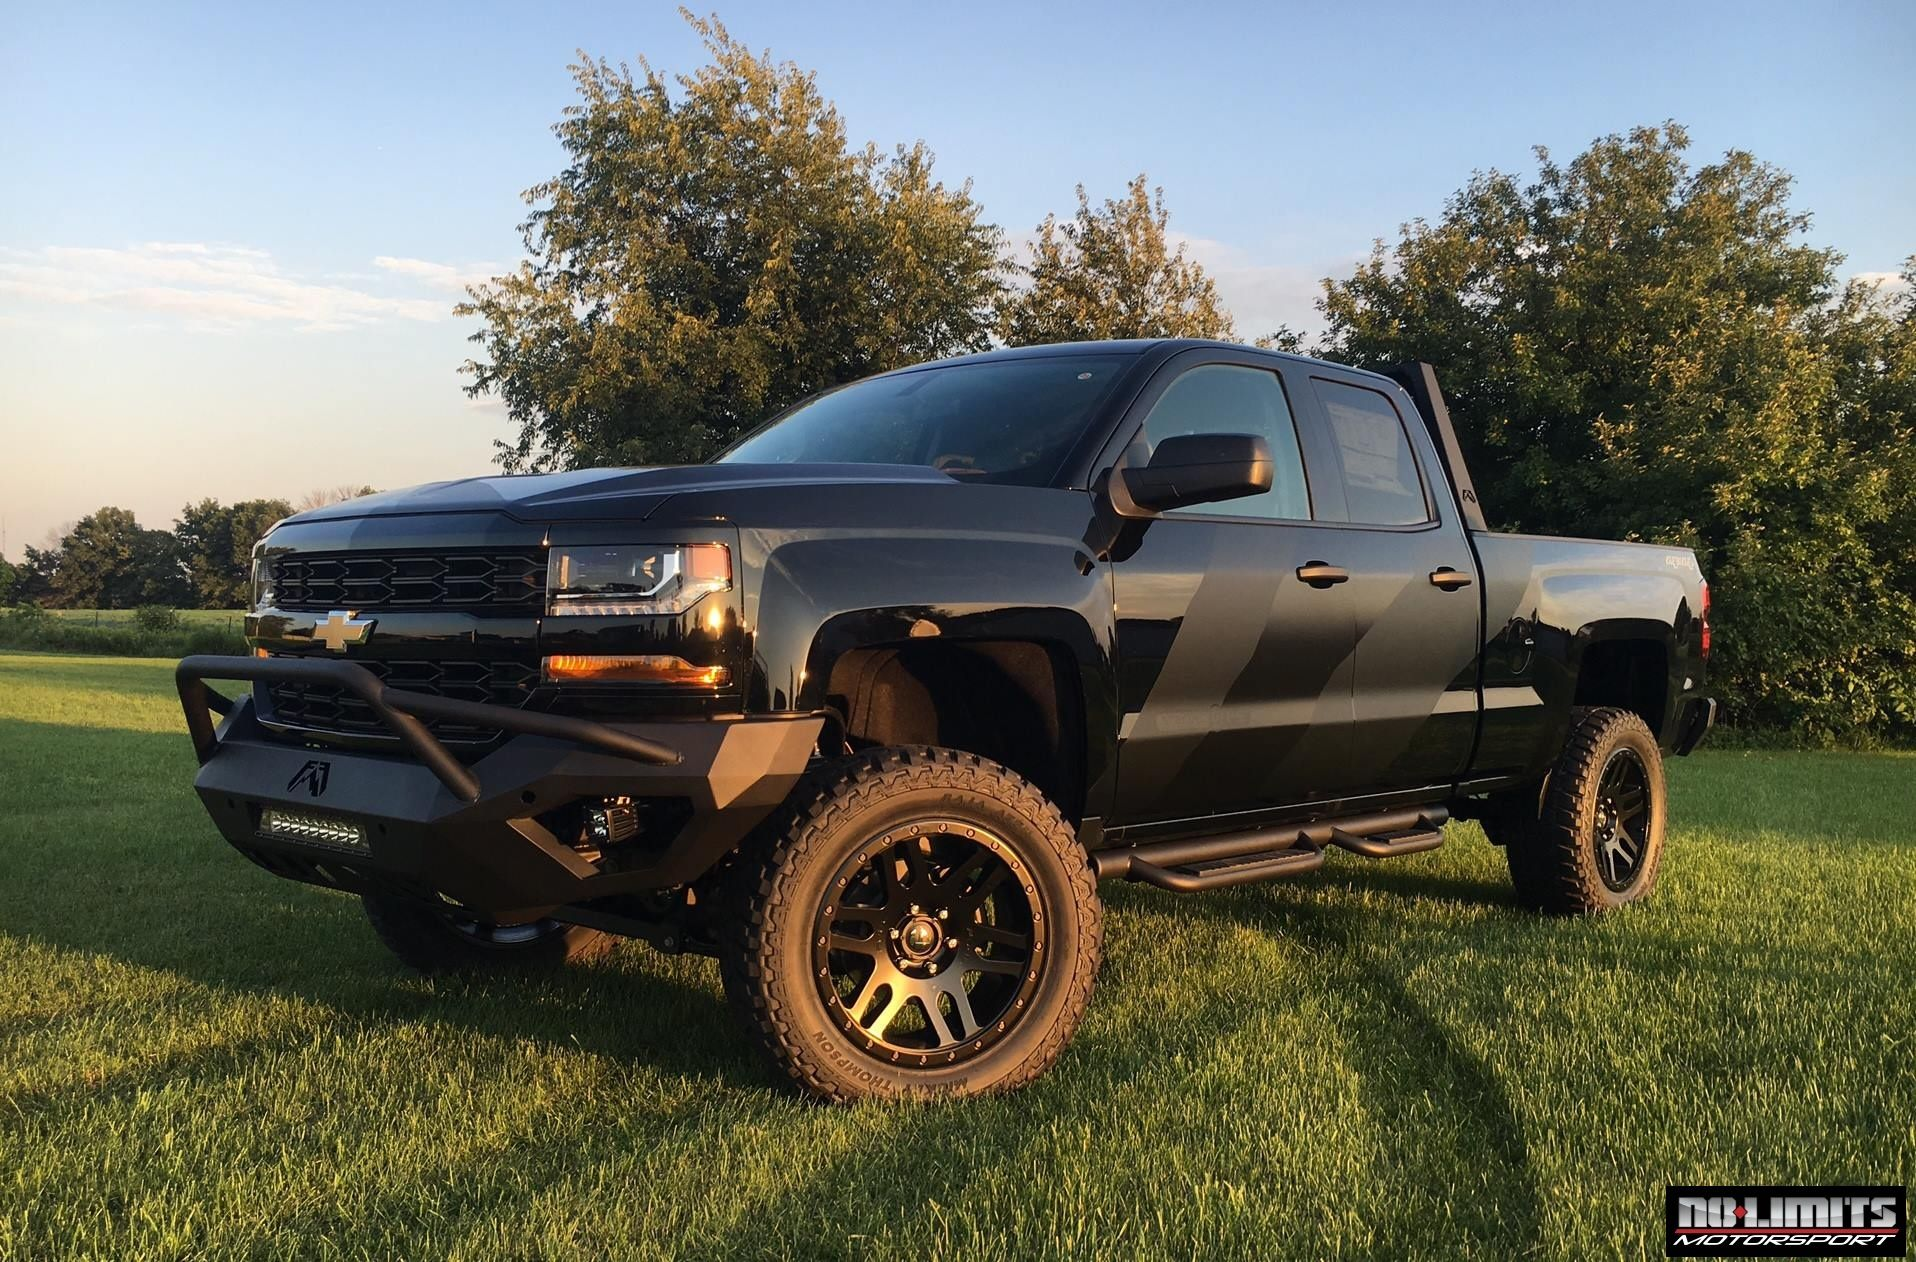 2016 Chevy Silverado Special Ops Edition customized by No Limits